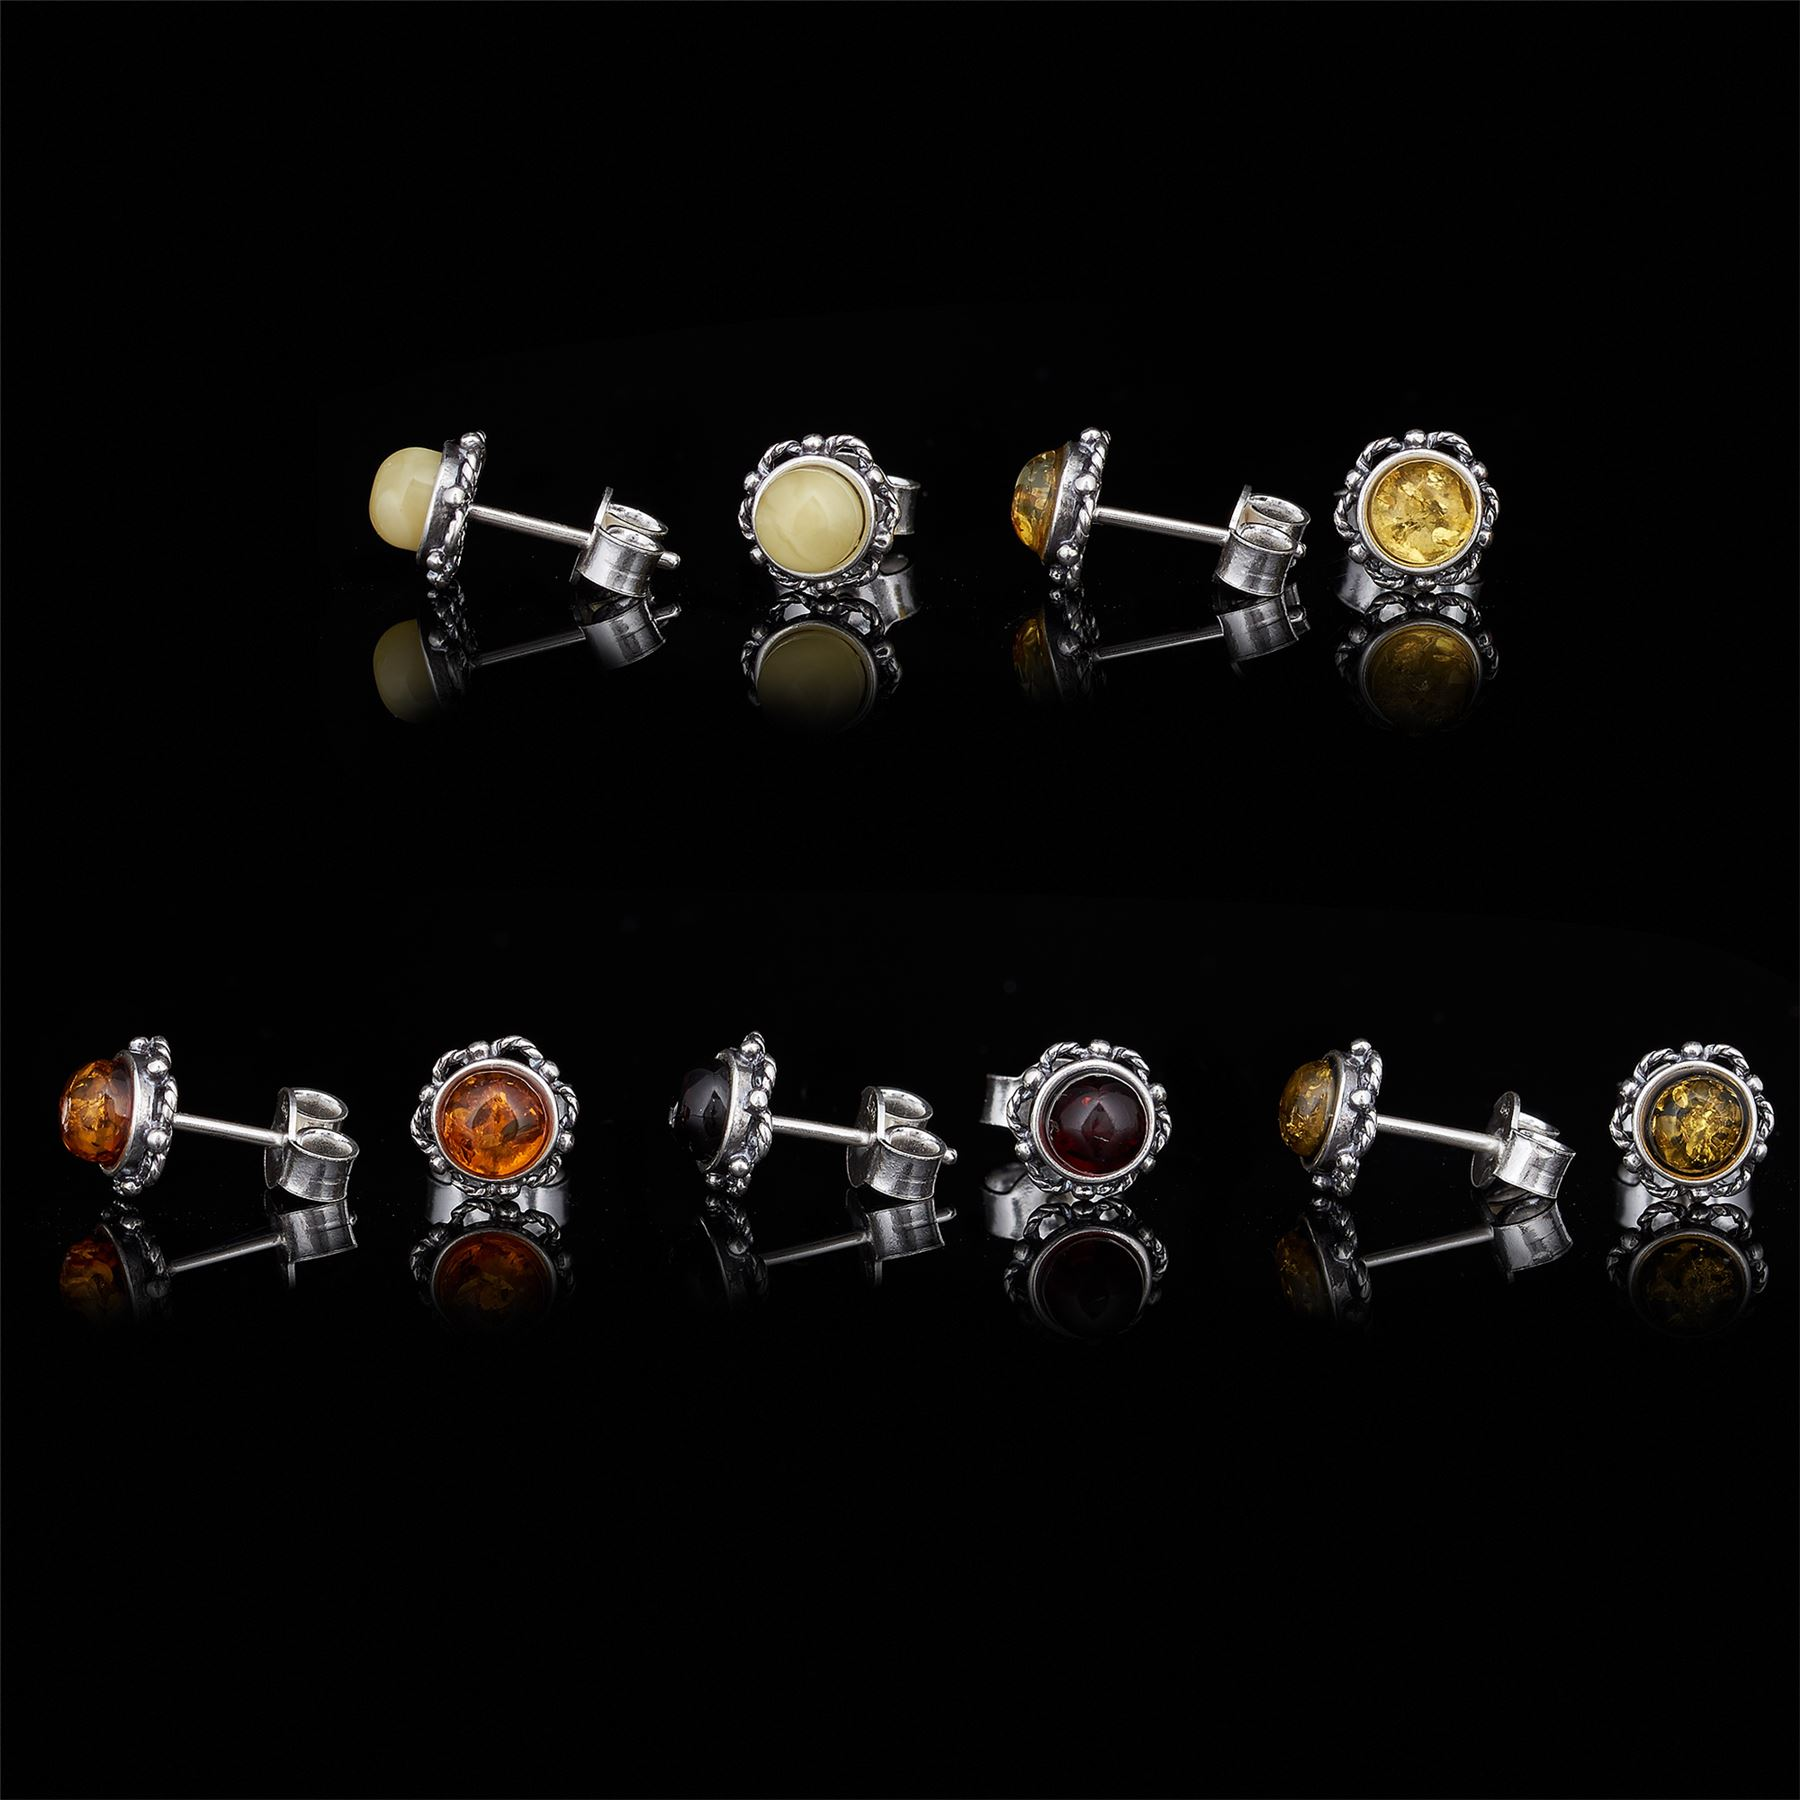 Amberta-Genuine-925-Sterling-Silver-Earrings-with-Natural-Baltic-Amber-Gemstone thumbnail 109